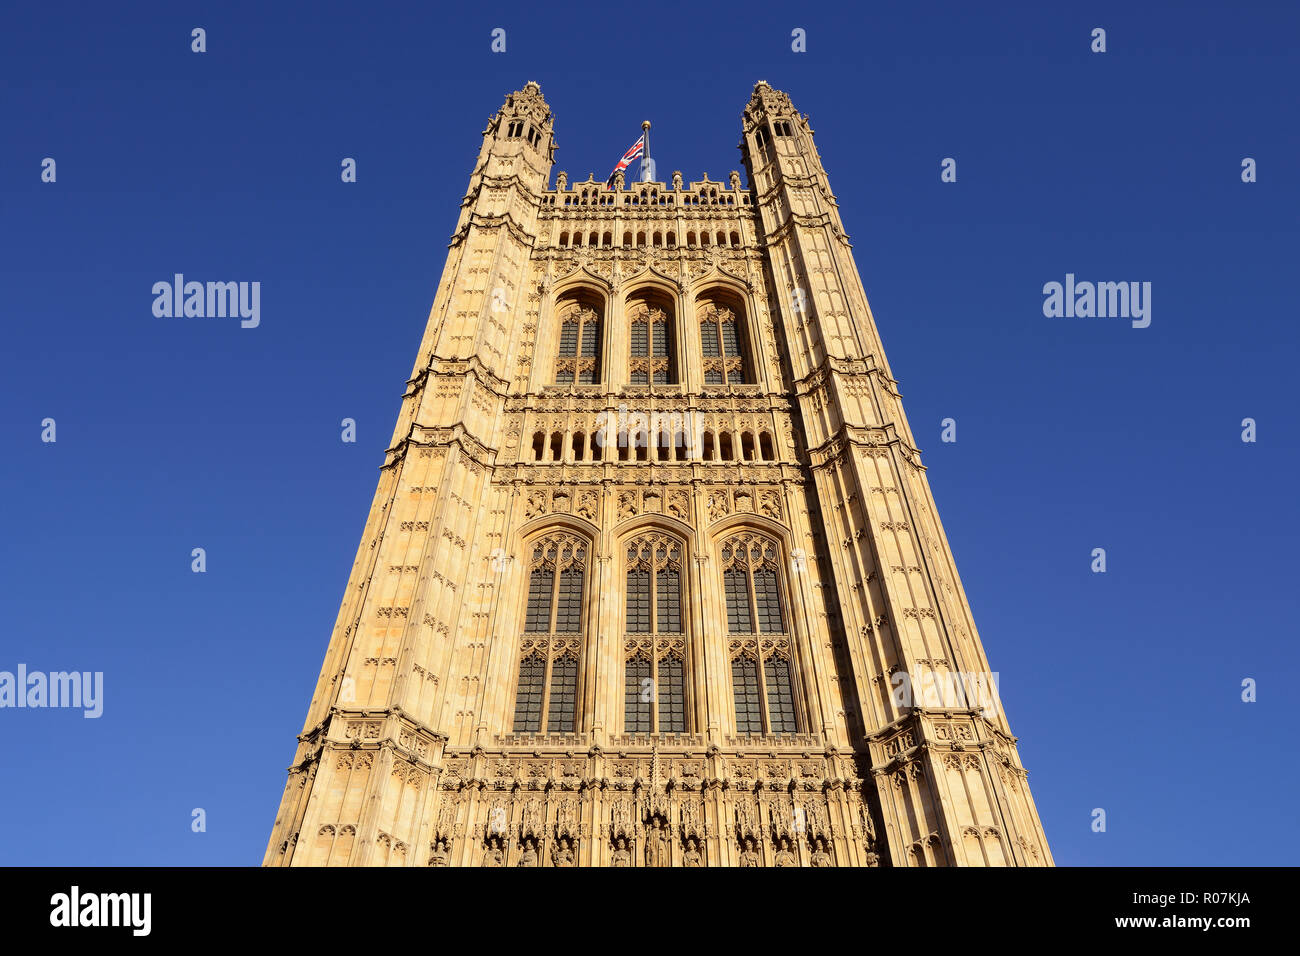 Victoria Tower, Houses of Parliament, Palace of Westminster, London, England, United Kingdom Stock Photo